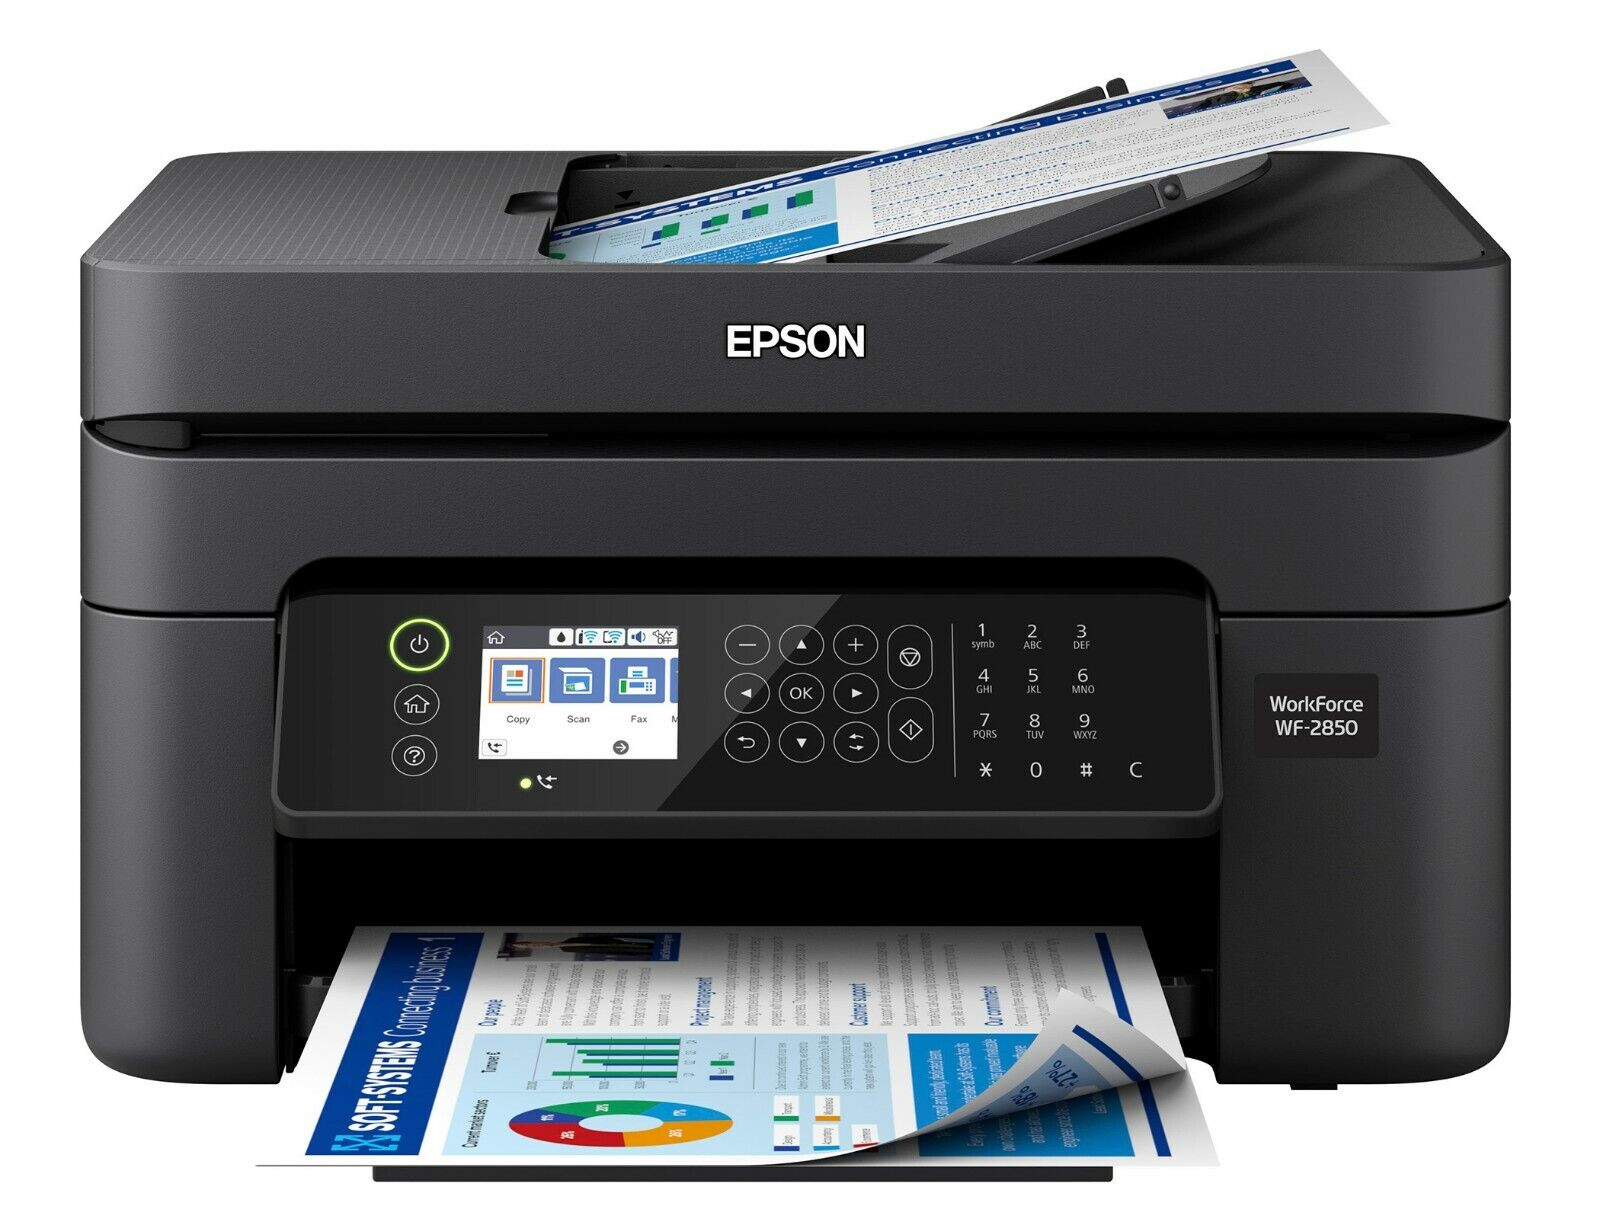 Epson WorkForce WF-2850 All-in-One Wireless Color Printer /